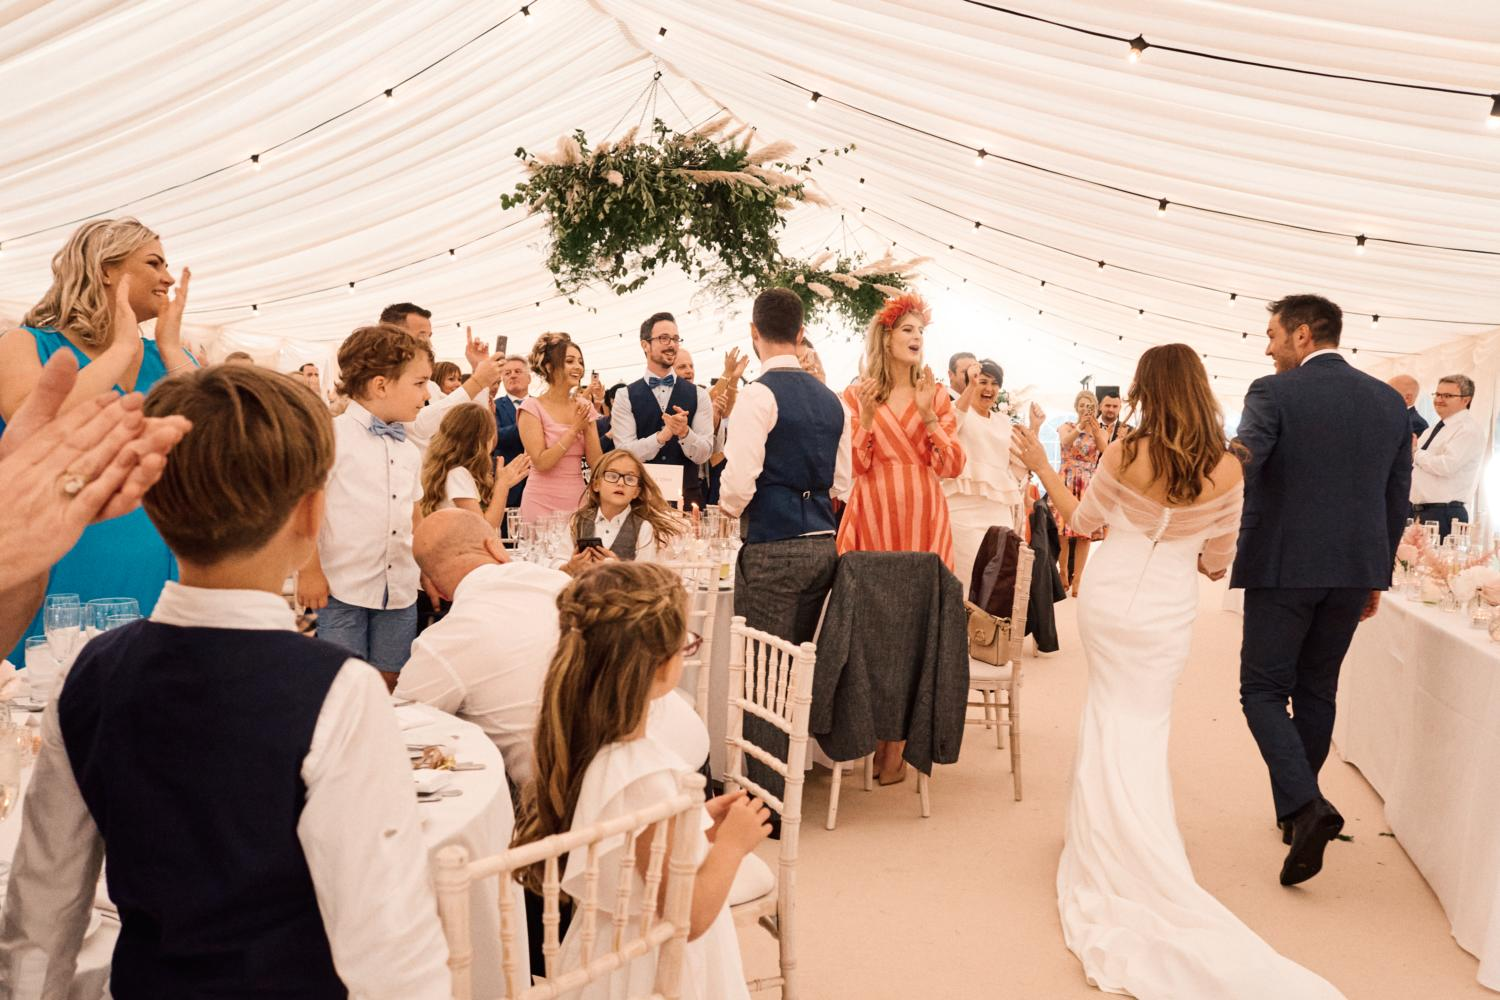 Guests celebrate the arrival of the newly wedded couple in a marquee